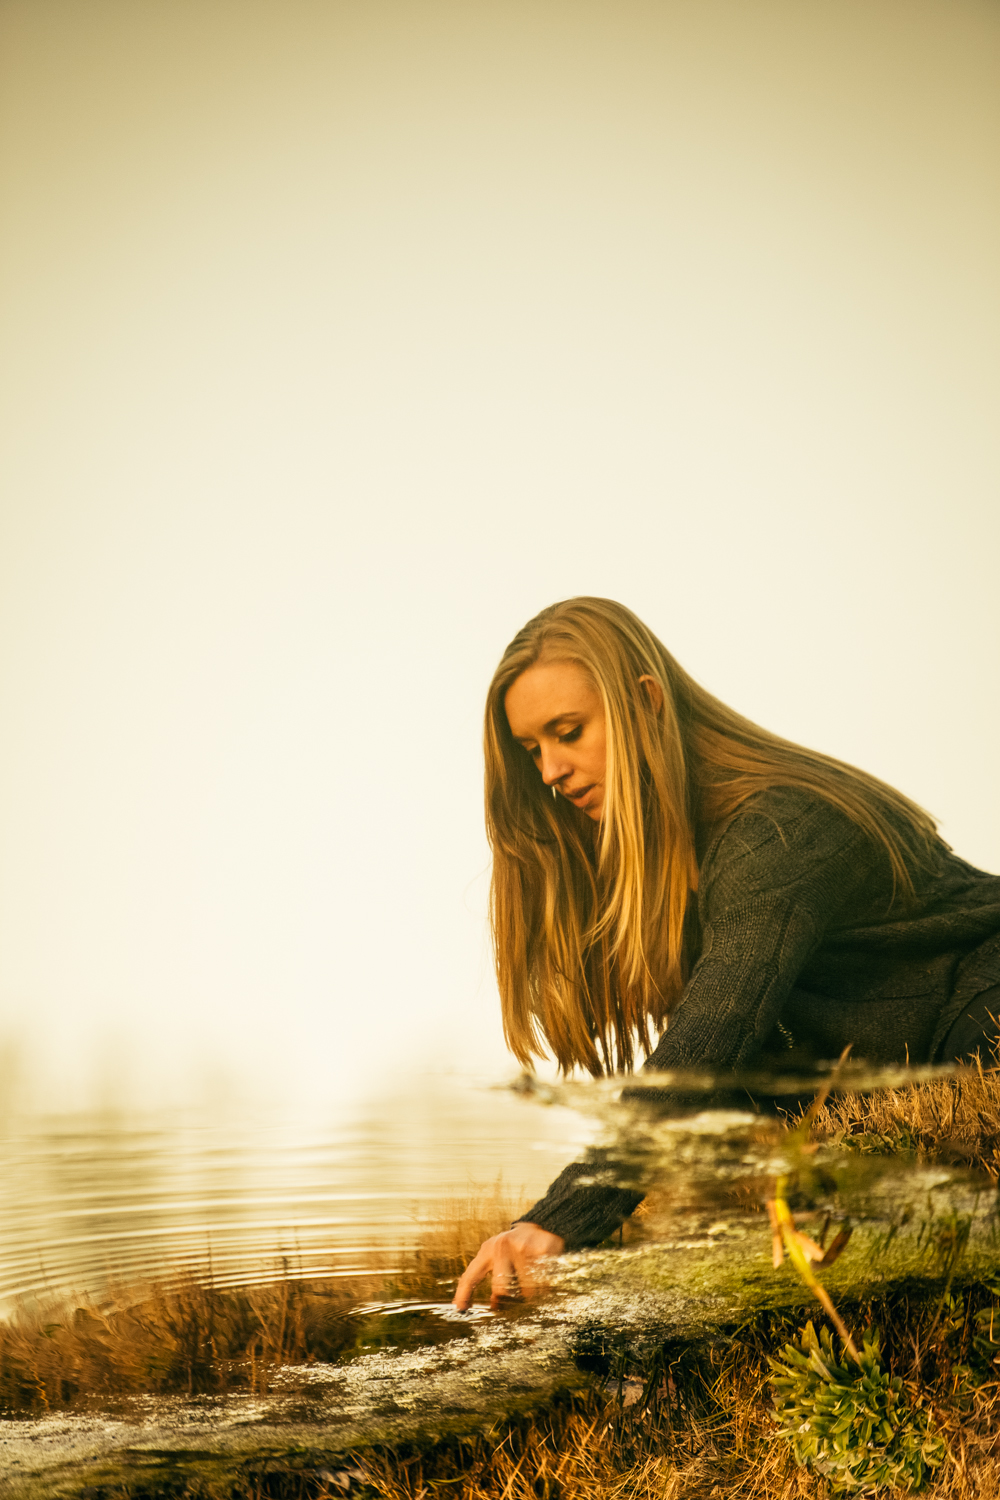 "This image is actually Susanna's reflection in a small pond of water. Workflow was capture > rotate image 180 degrees > Susanna's ""real"" self was photoshopped out > finally, color toning and other effects were added."